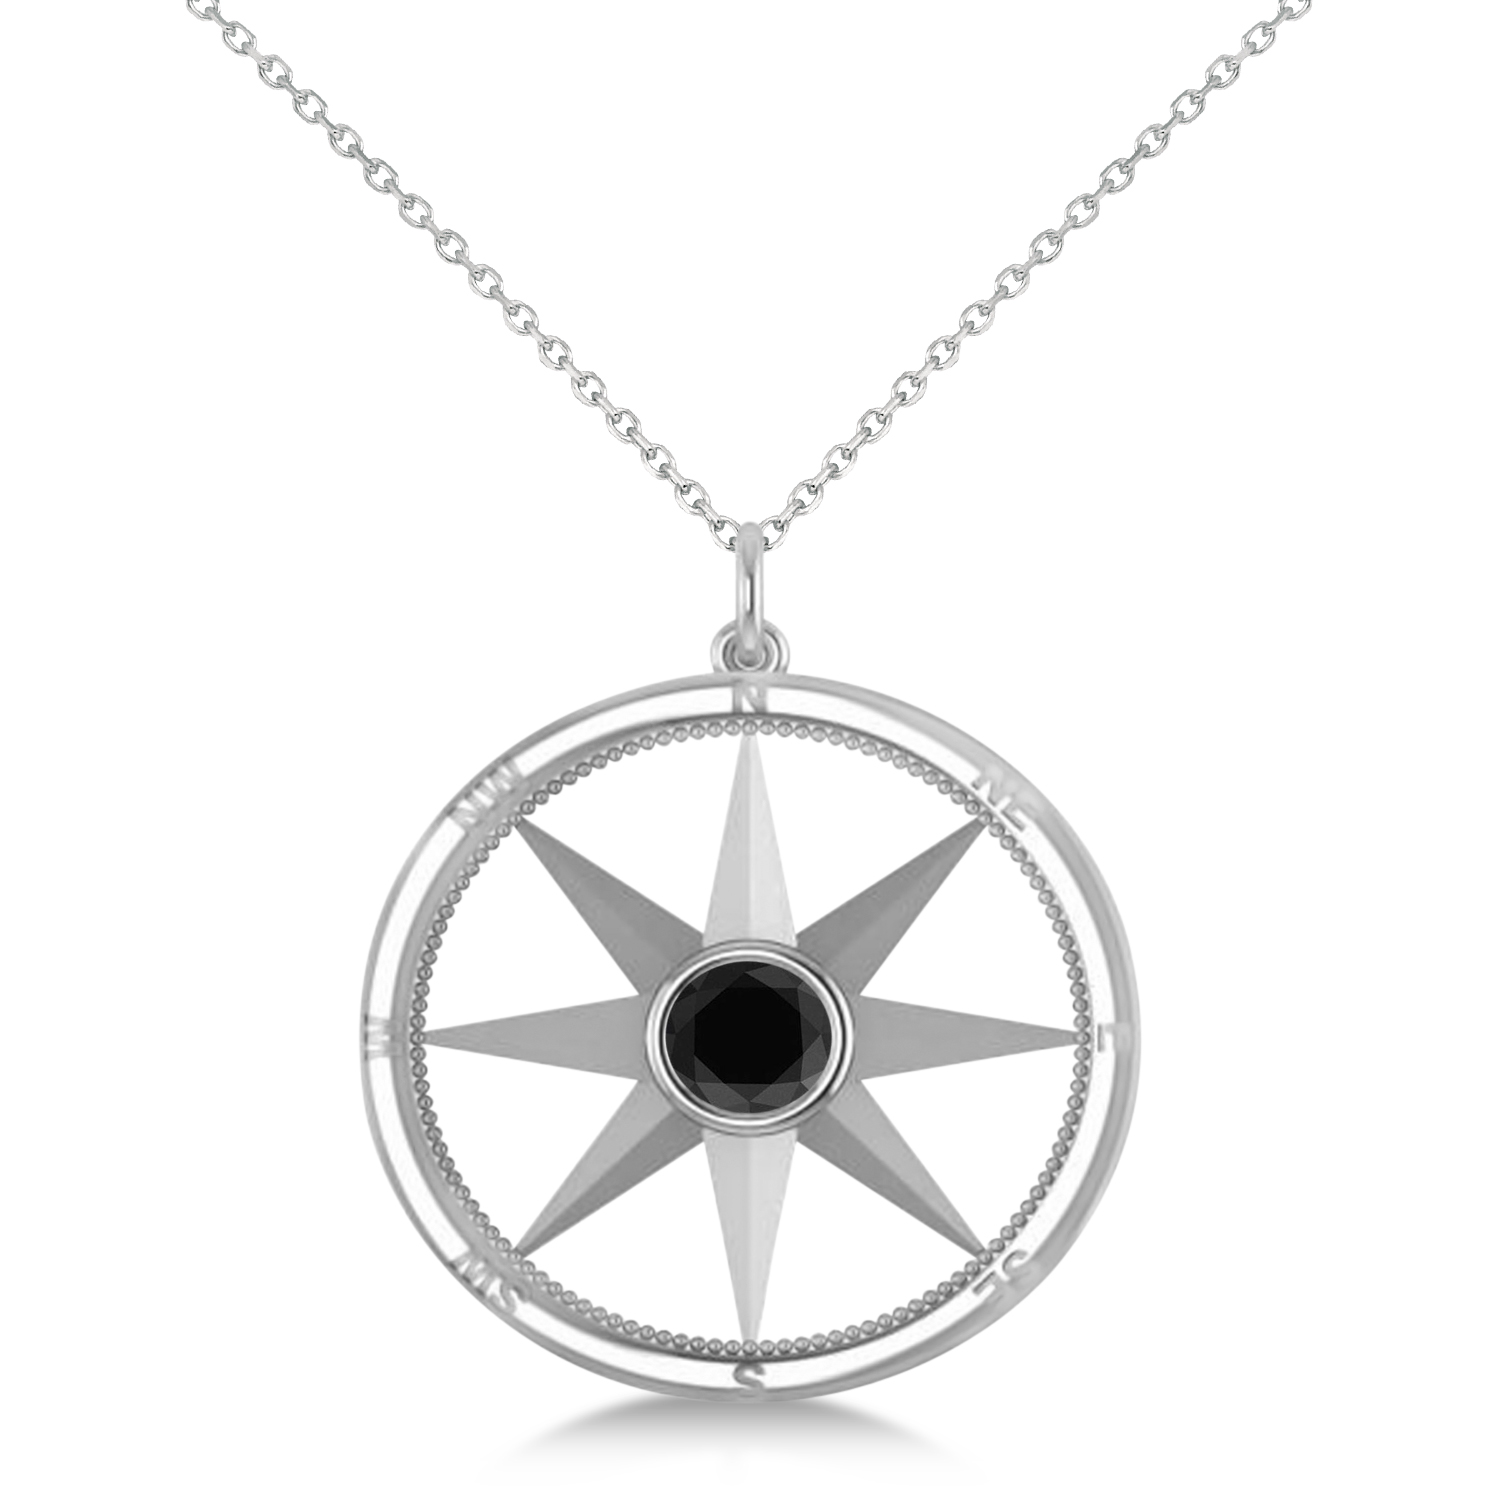 Black Diamond Compass Pendant Fashion Necklace 14k White Gold 066ct